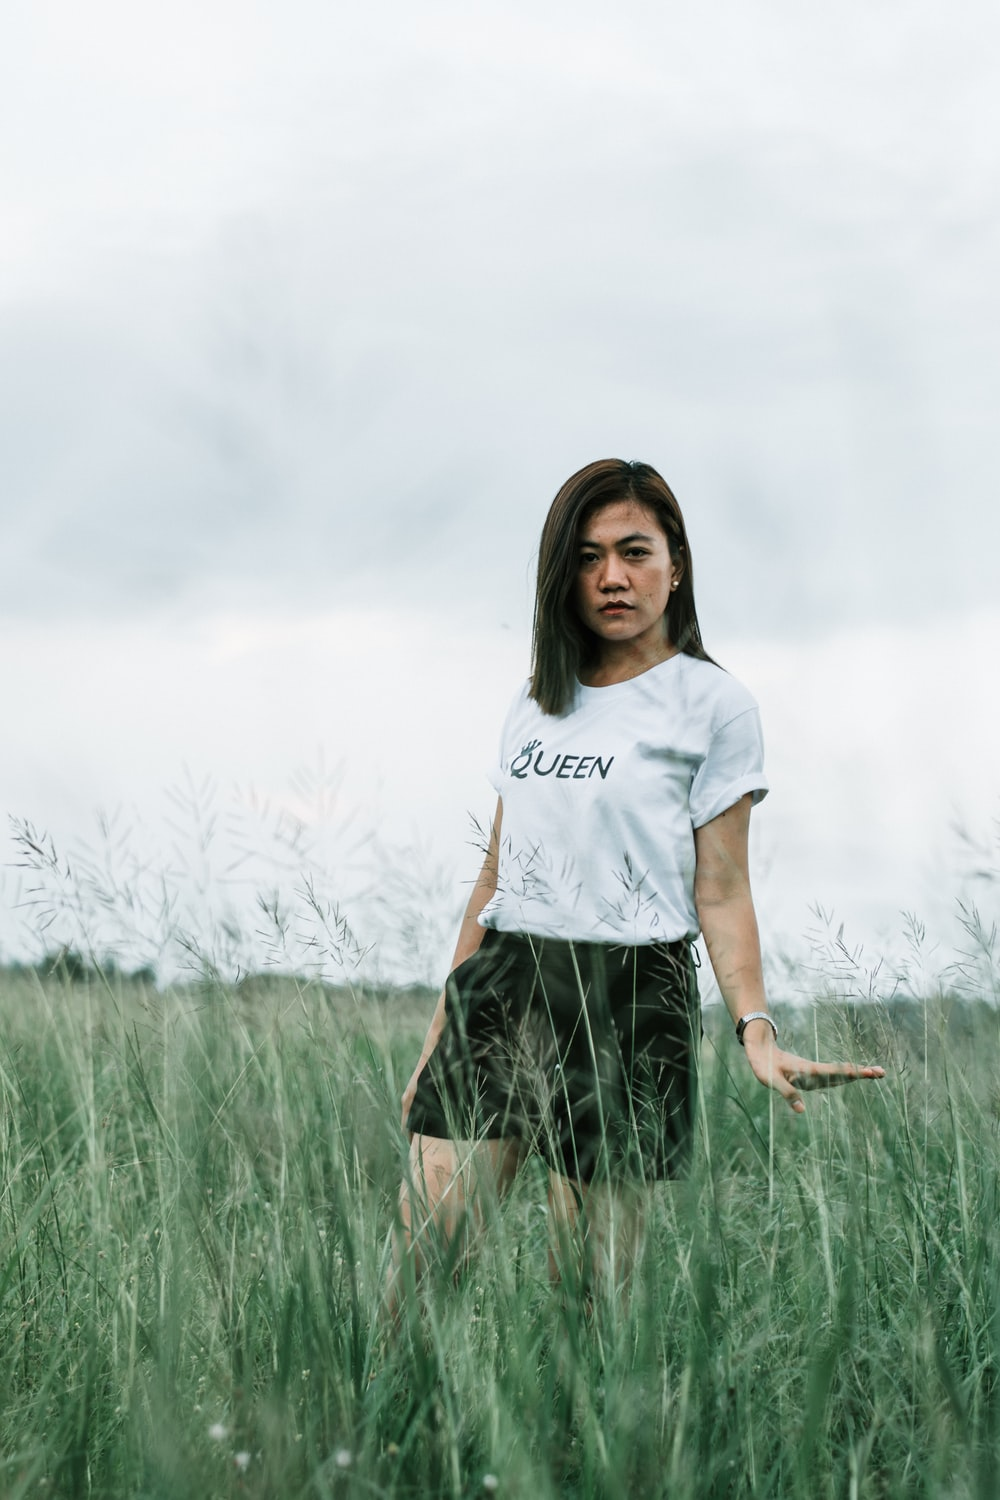 woman in white shirt standing on grass field during daytime